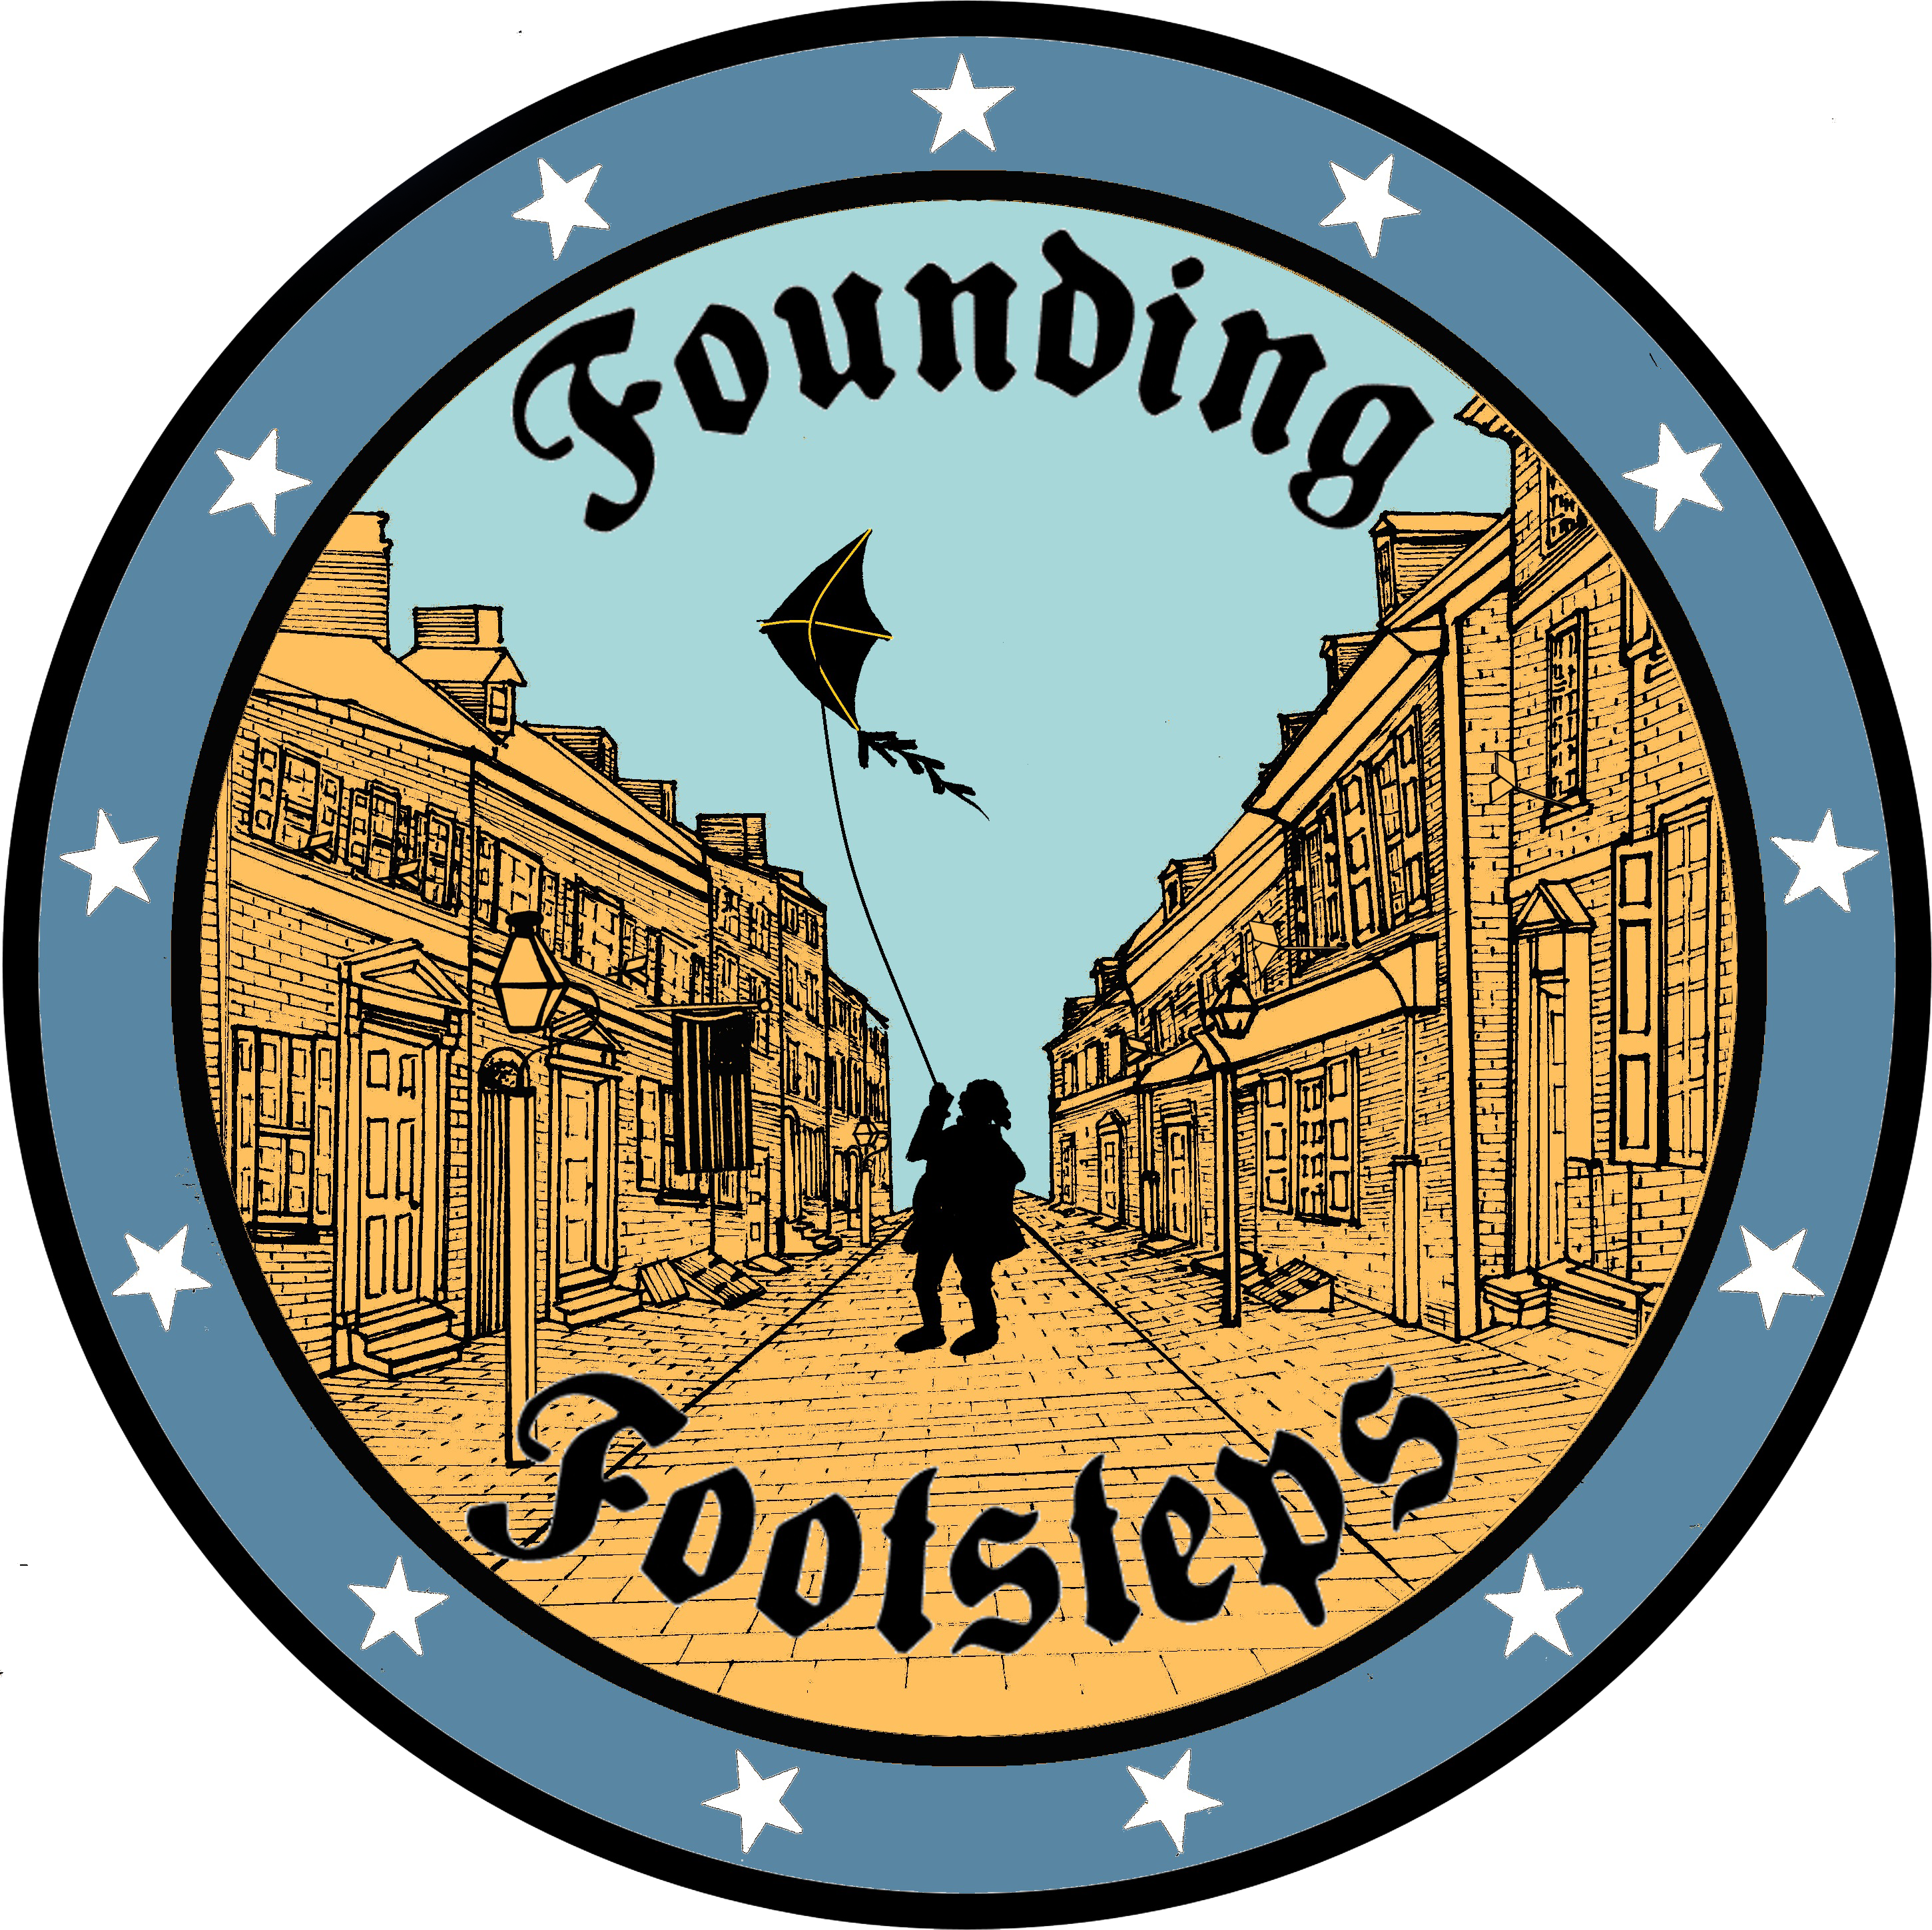 Footsteps clipart one step at time. Founding unique trolley tours